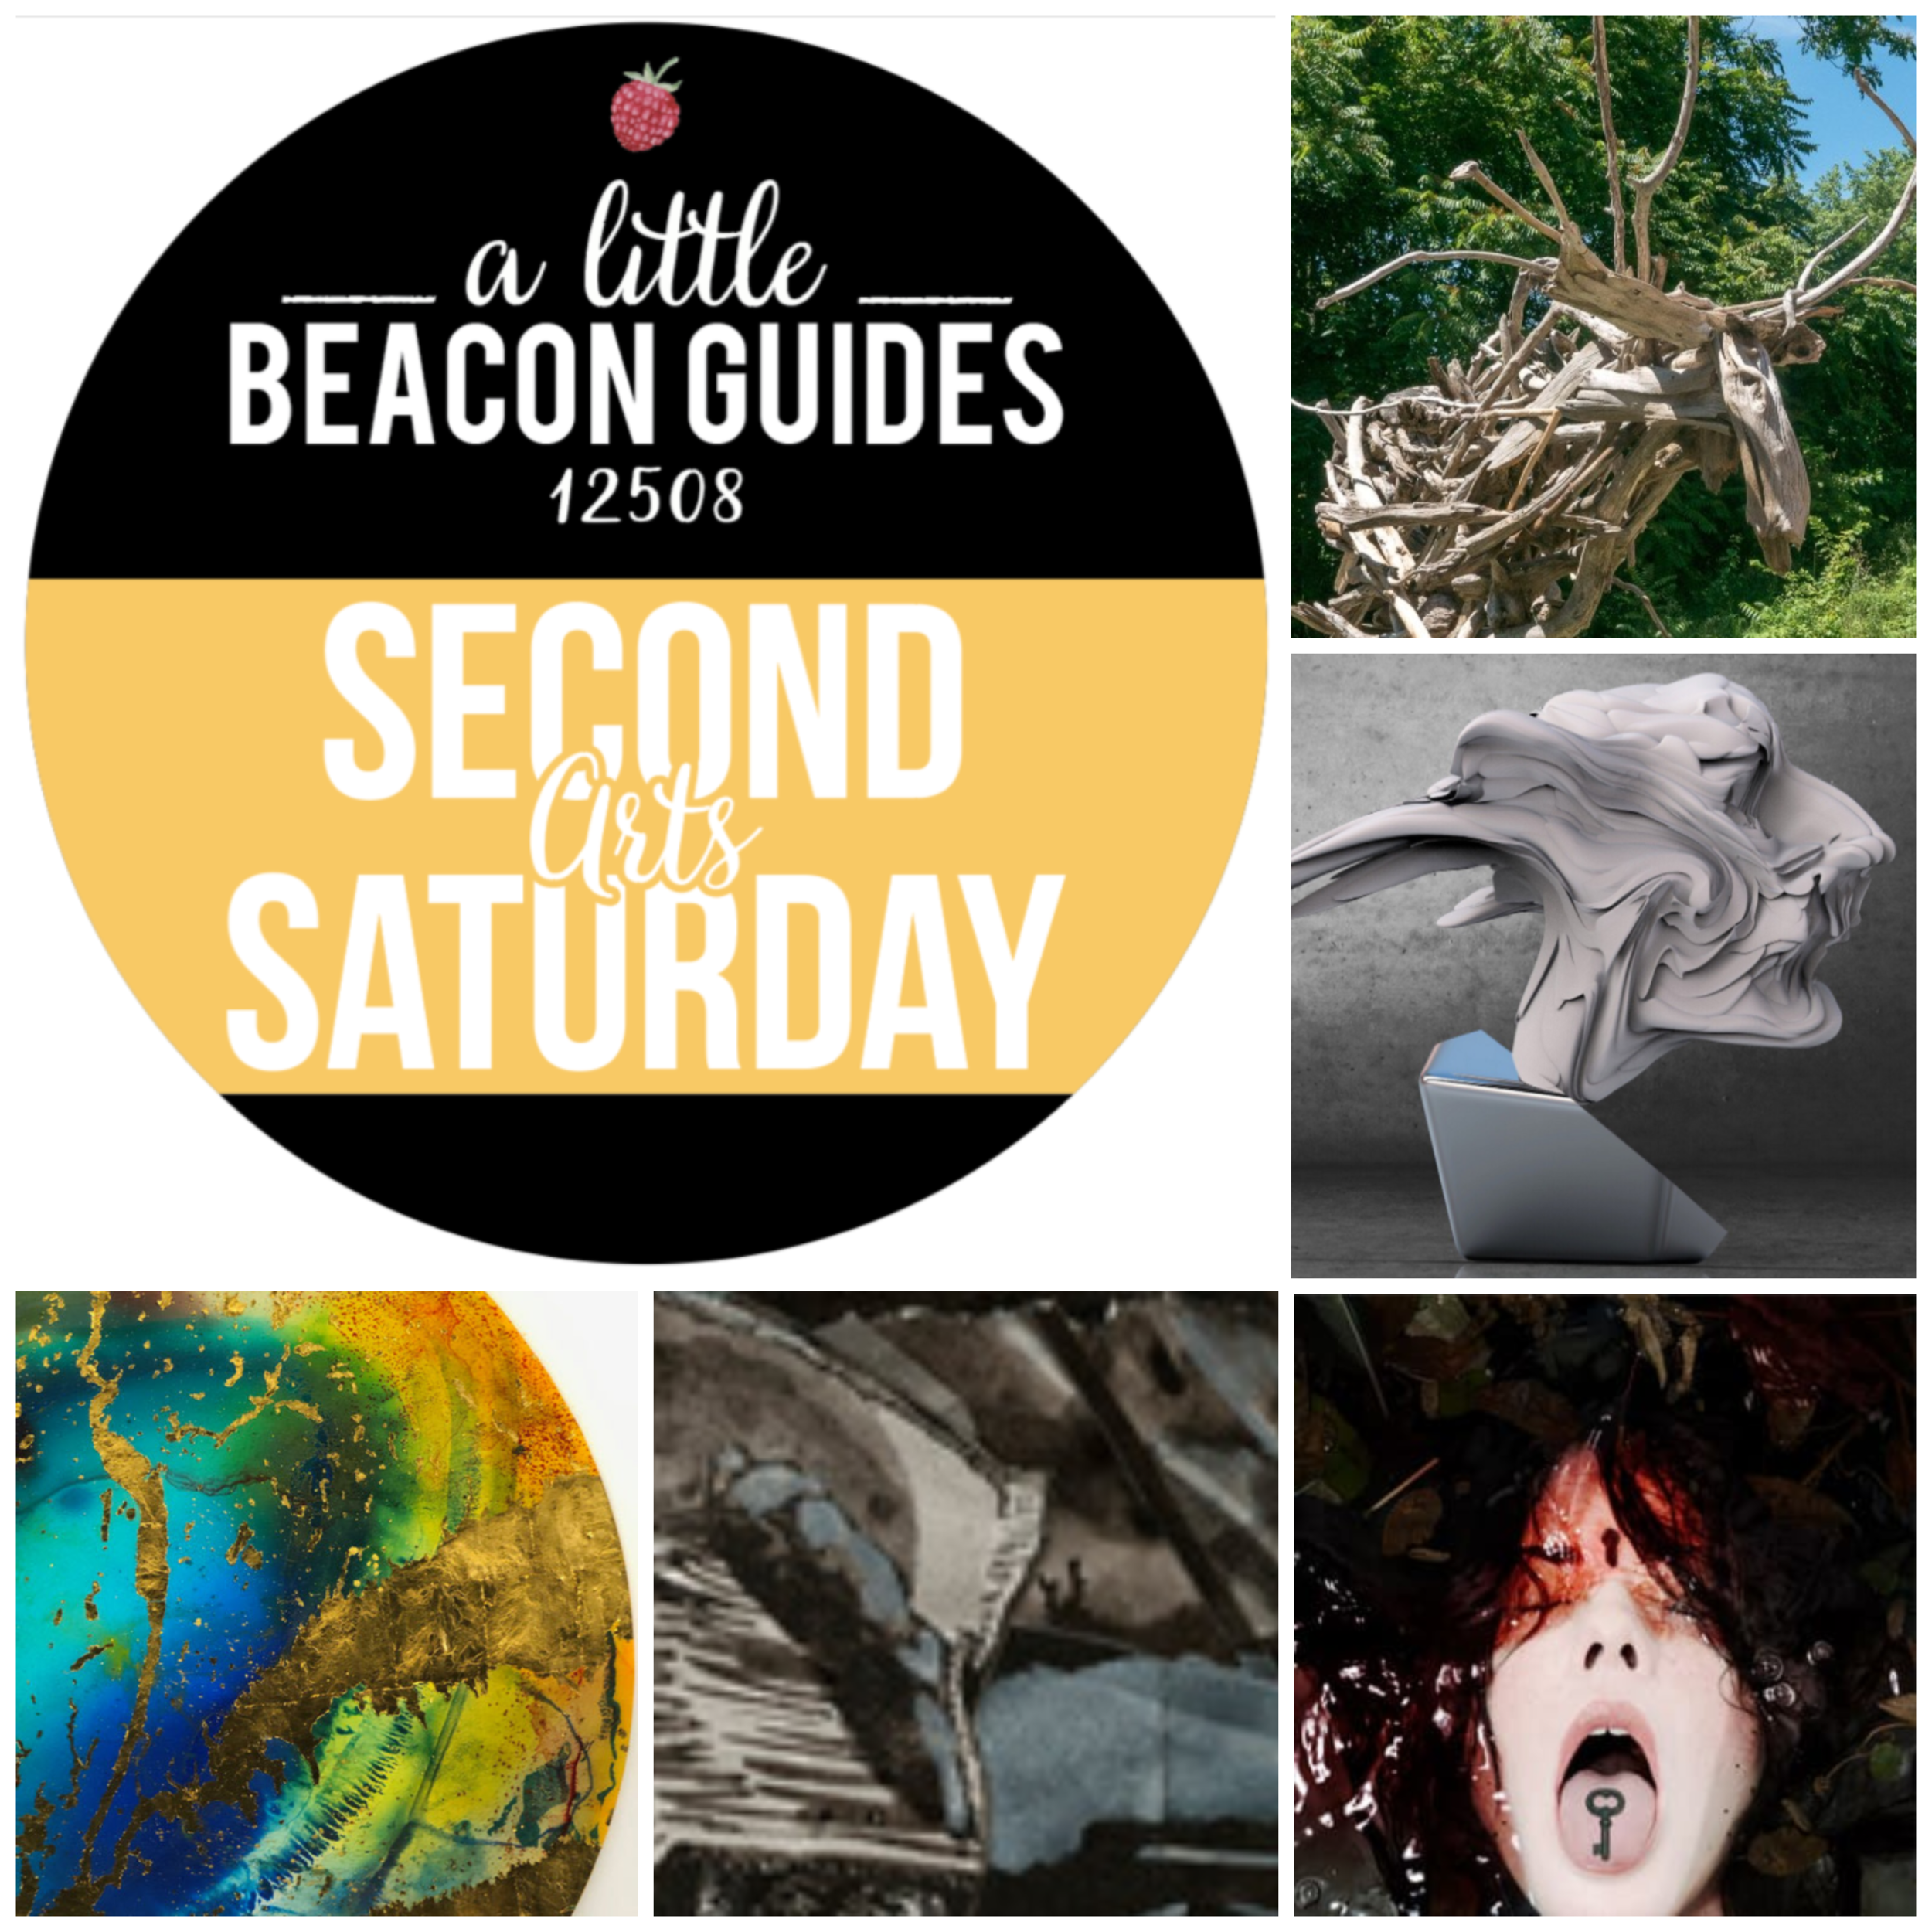 Second Saturday is overflowing with openings, closings, and continuings! Clockwise from top right: Alberto Burstzyn's  Beacon Moose  in Beacon 3D; Liao Yibai's work in  Eustatia  at the brand-new Global Art Museum; Meghan Spiro's wrenching, important  Without Fear & Full of Love  at Bau Gallery; Mariam Aziza Stephan and Julia Johnson's  Hatched in the Drift  at No. 3 Reading Room & Photo Book Works; and the closing weeks of John Sabraw's  Anthrotopographies  at the Beacon Institute for Rivers and Estuaries.